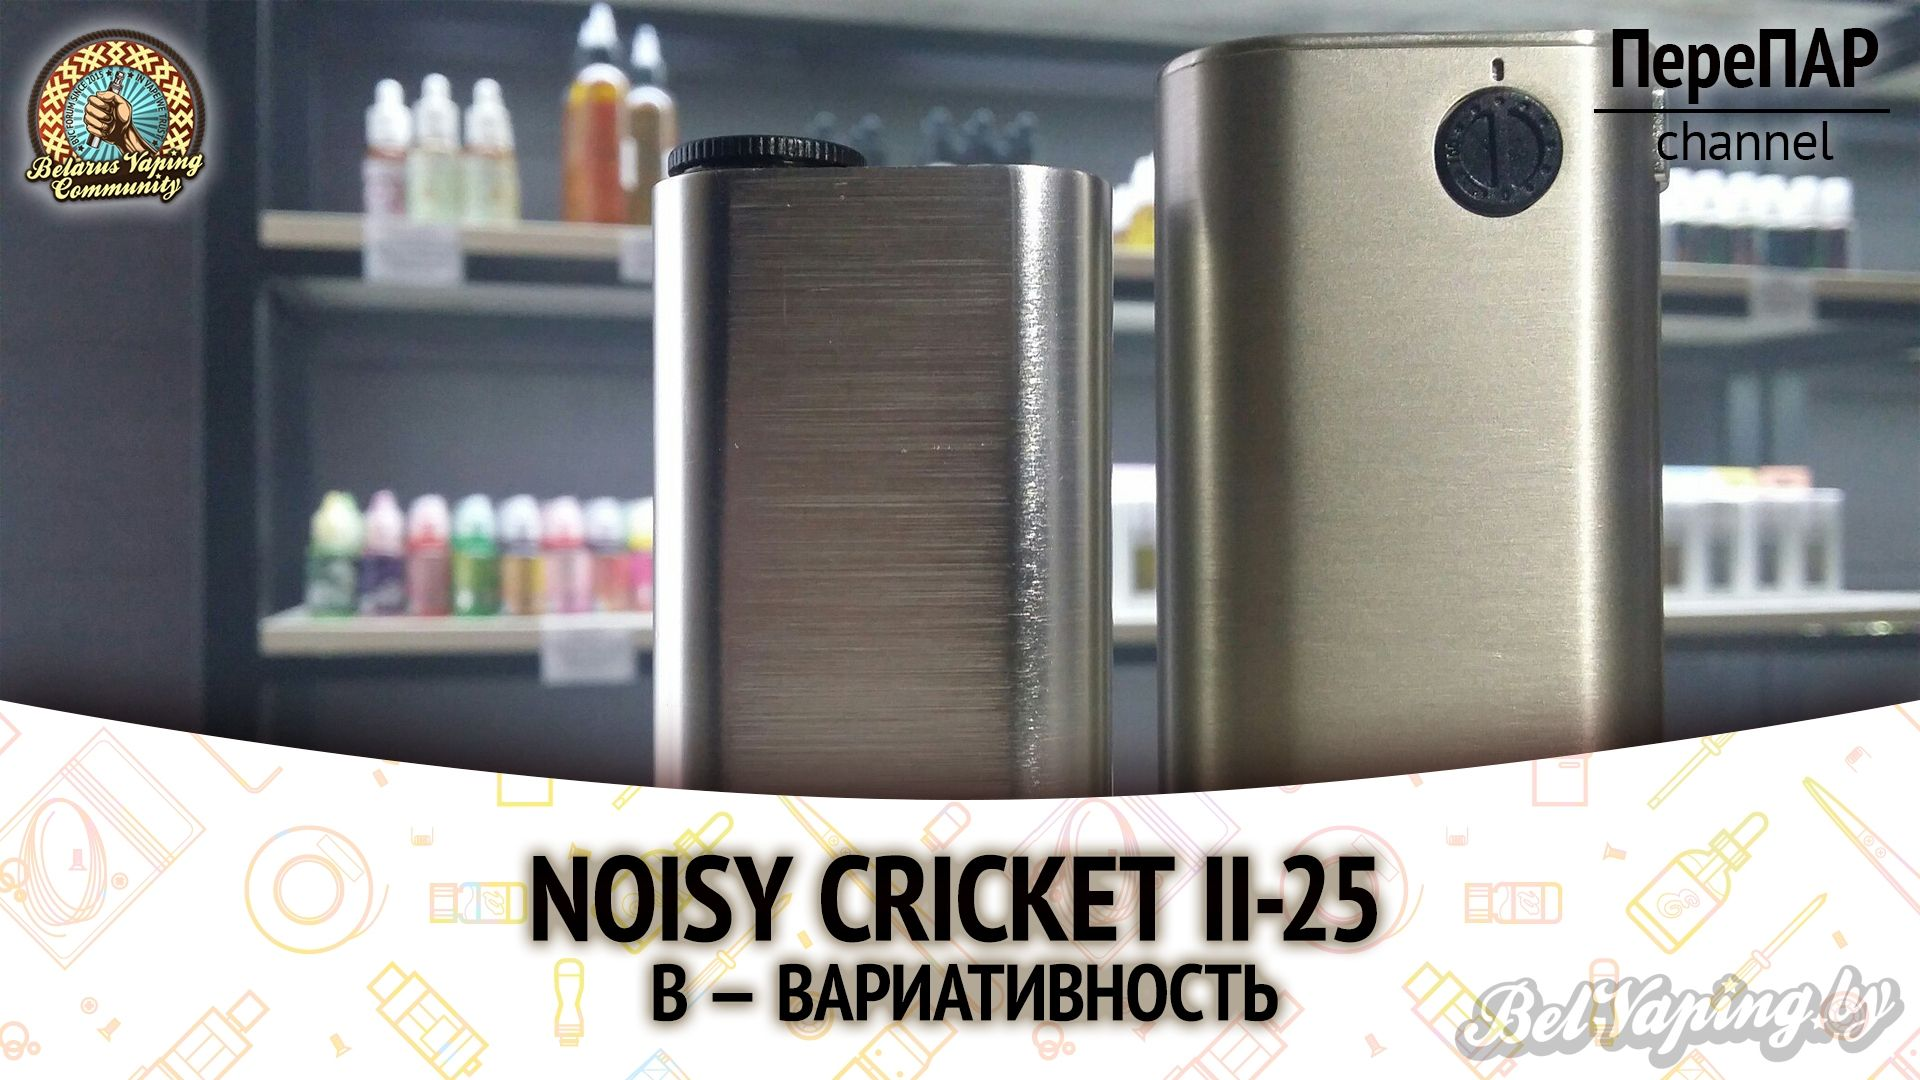 Обзор Noisy Cricket II-25